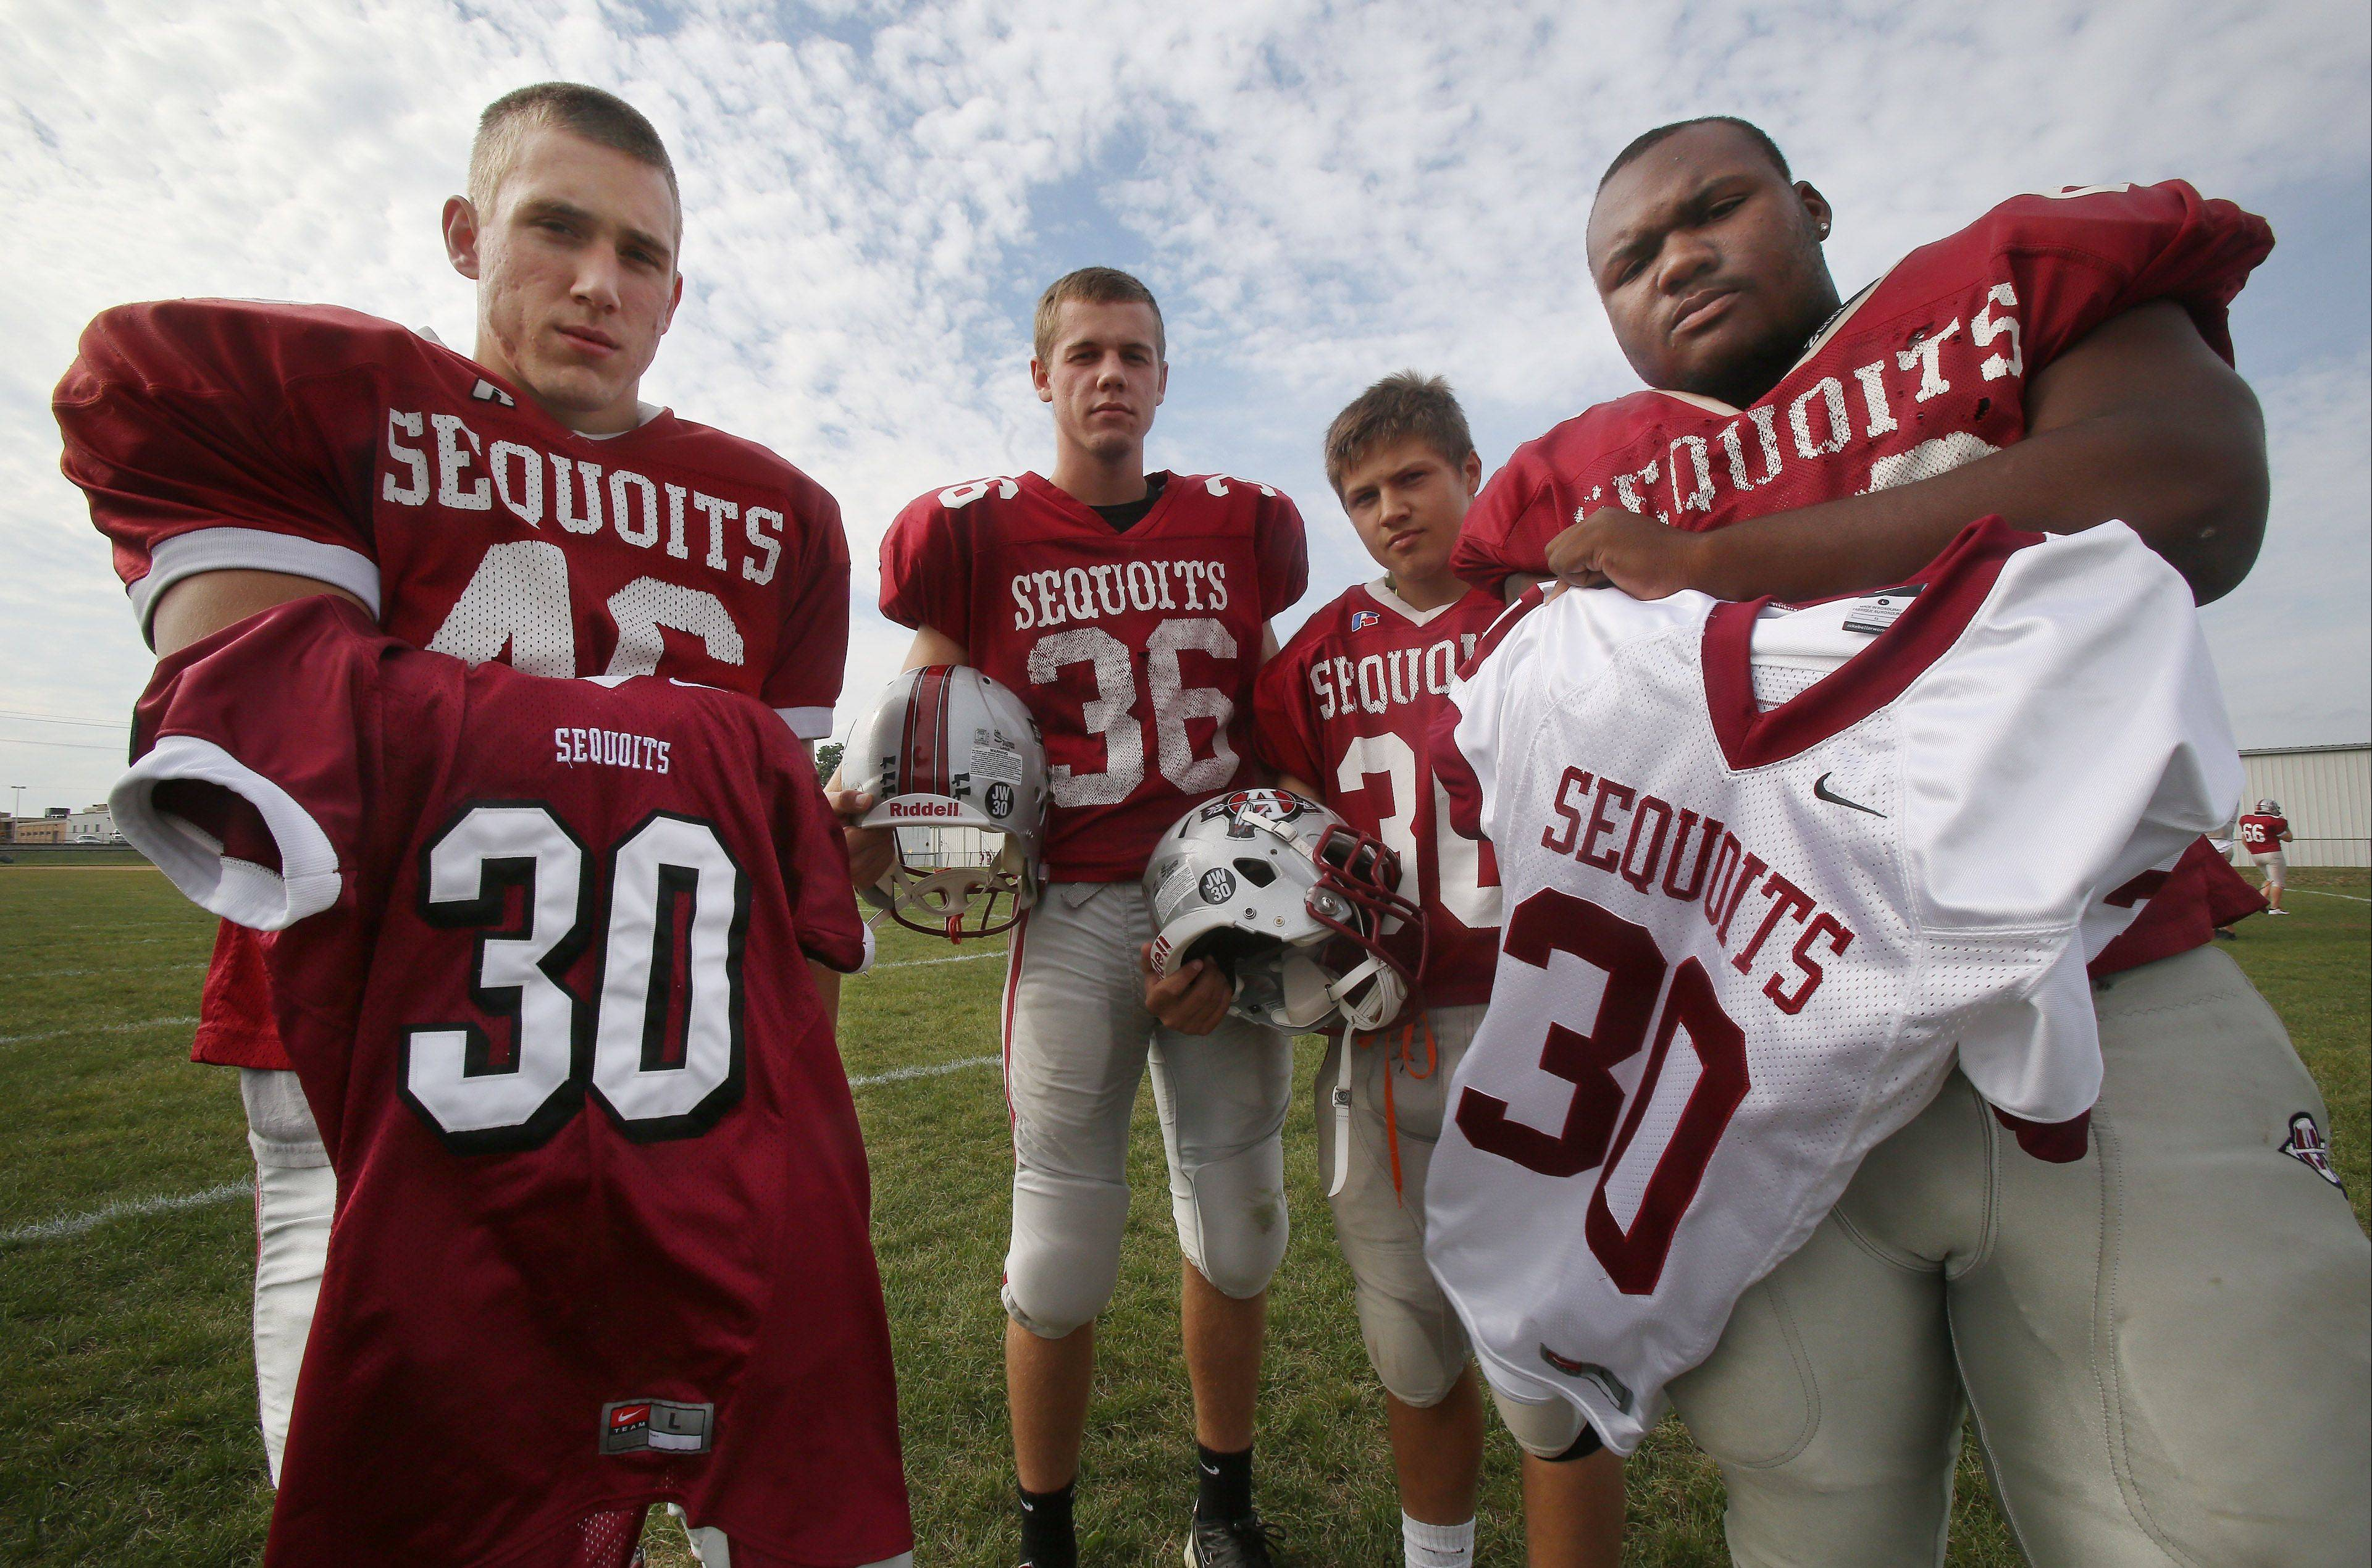 Antioch football players Robert Ritacca, left, Christian Norris, Wesley Zegan and Malik Jackson hold versions of jersey No. 30 in honor of former teammate Joel Wittkamp, who died in a car accident in February. Every week this season, a different Antioch senior wears No. 30 in memory of Wittkamp.